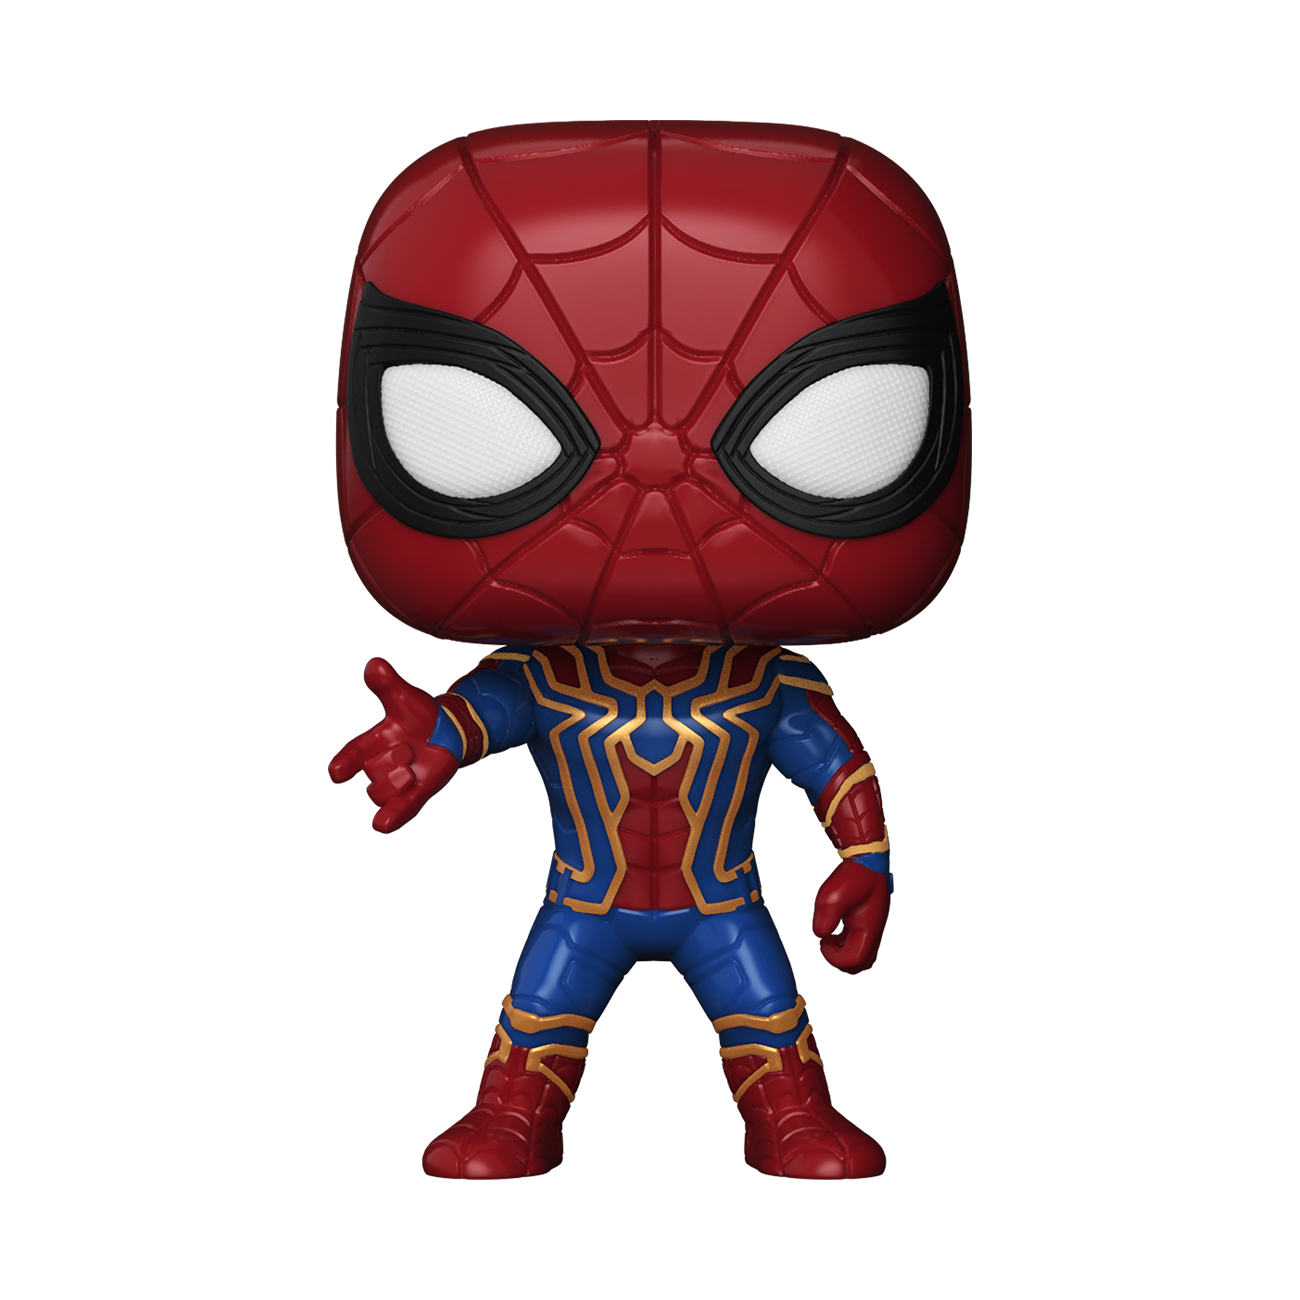 Assemble The Avengers To Keep Thanos From Getting The Infinity Stones In Your Marvel Infinity War Iron Spider Funko Pop Thanos Iron Man Spiderman Action Figure